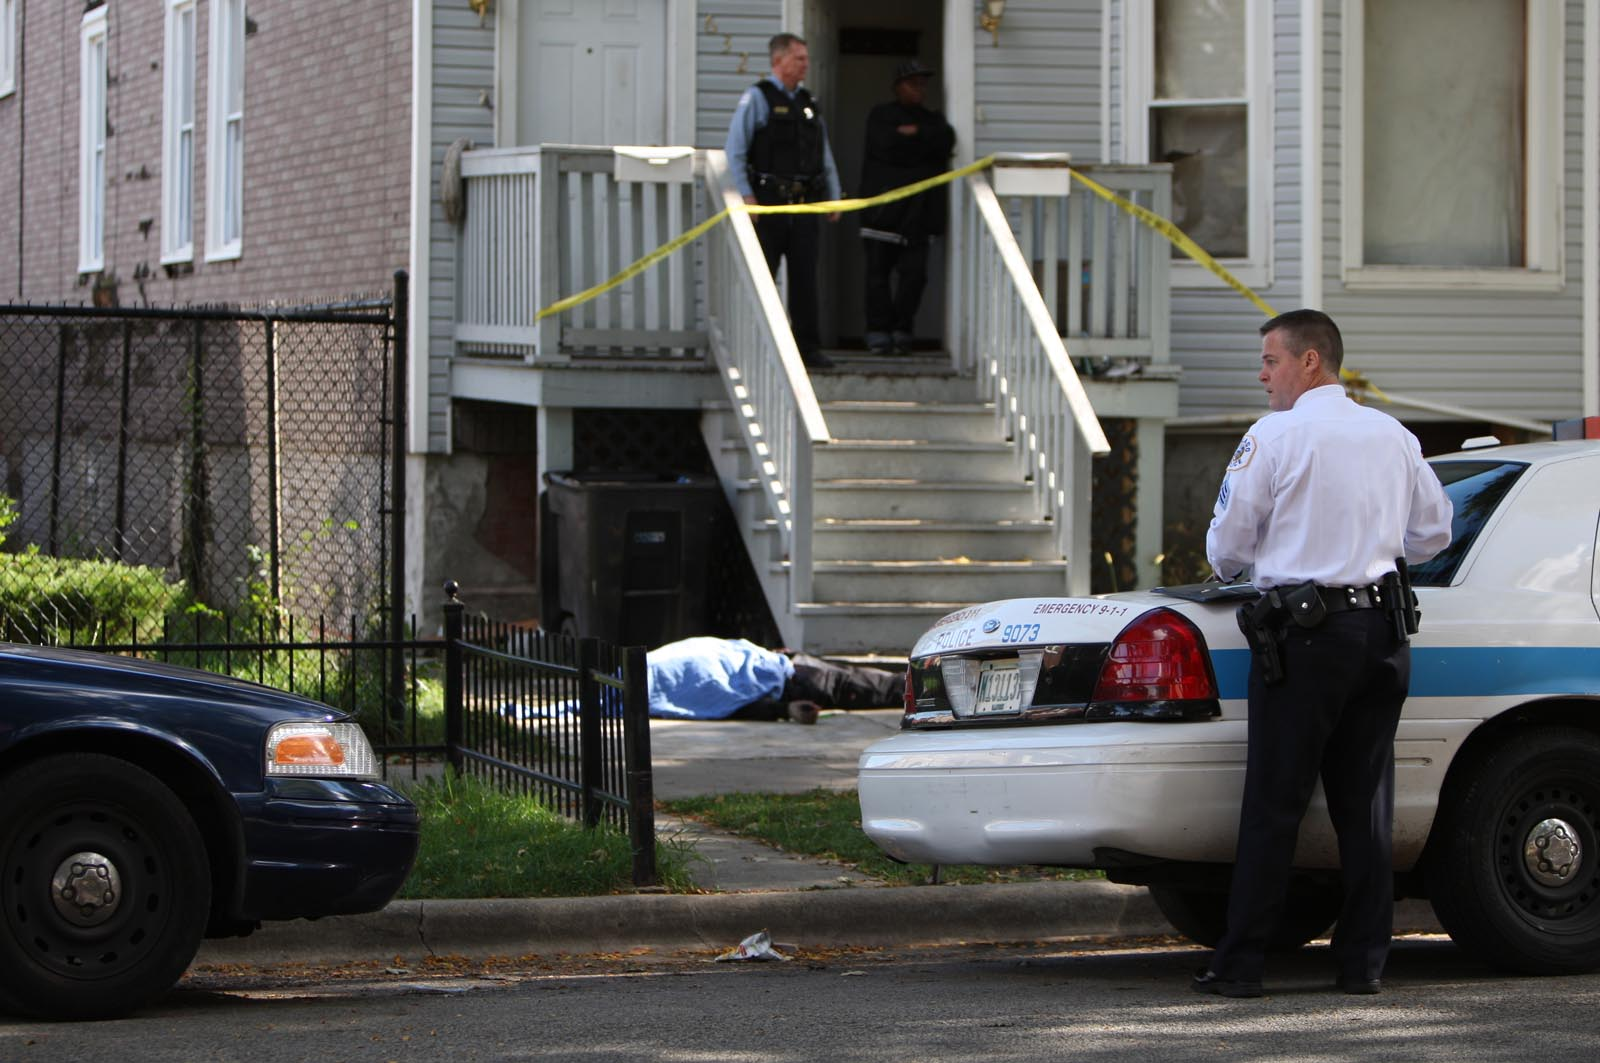 chicago-police-city-violence-commits-suicide